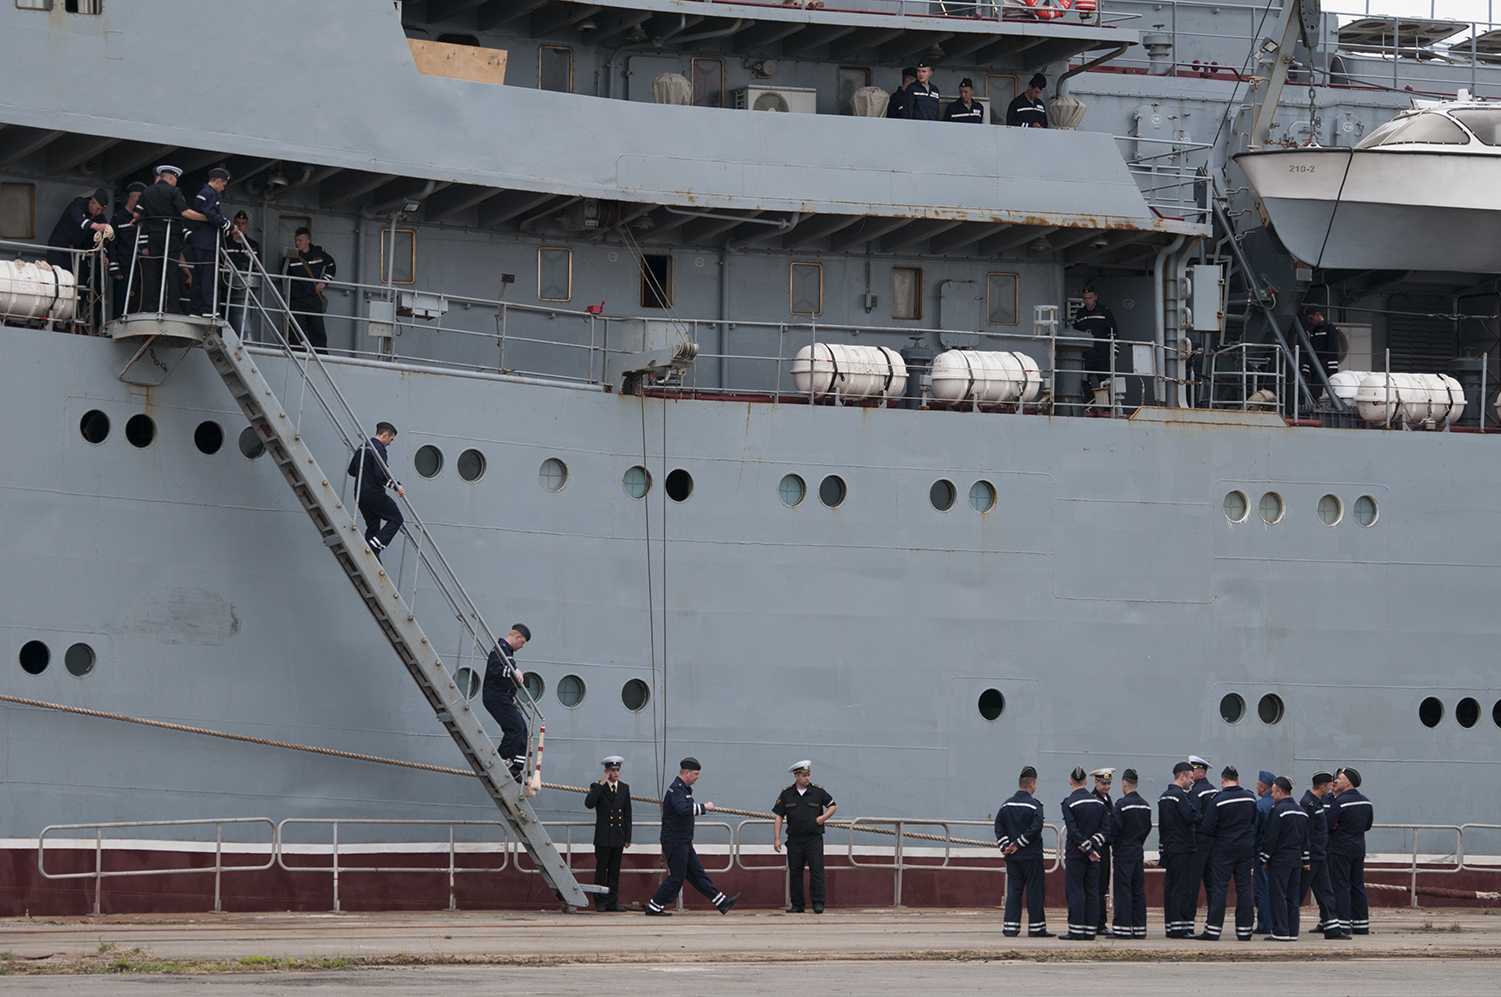 Russian sailors disembarking in Saint Nazaire to start their training on the Vladivostok, the first of the two Mistral warships sold by the French government to Russia . Its delivery is set for the last quarter of this year.